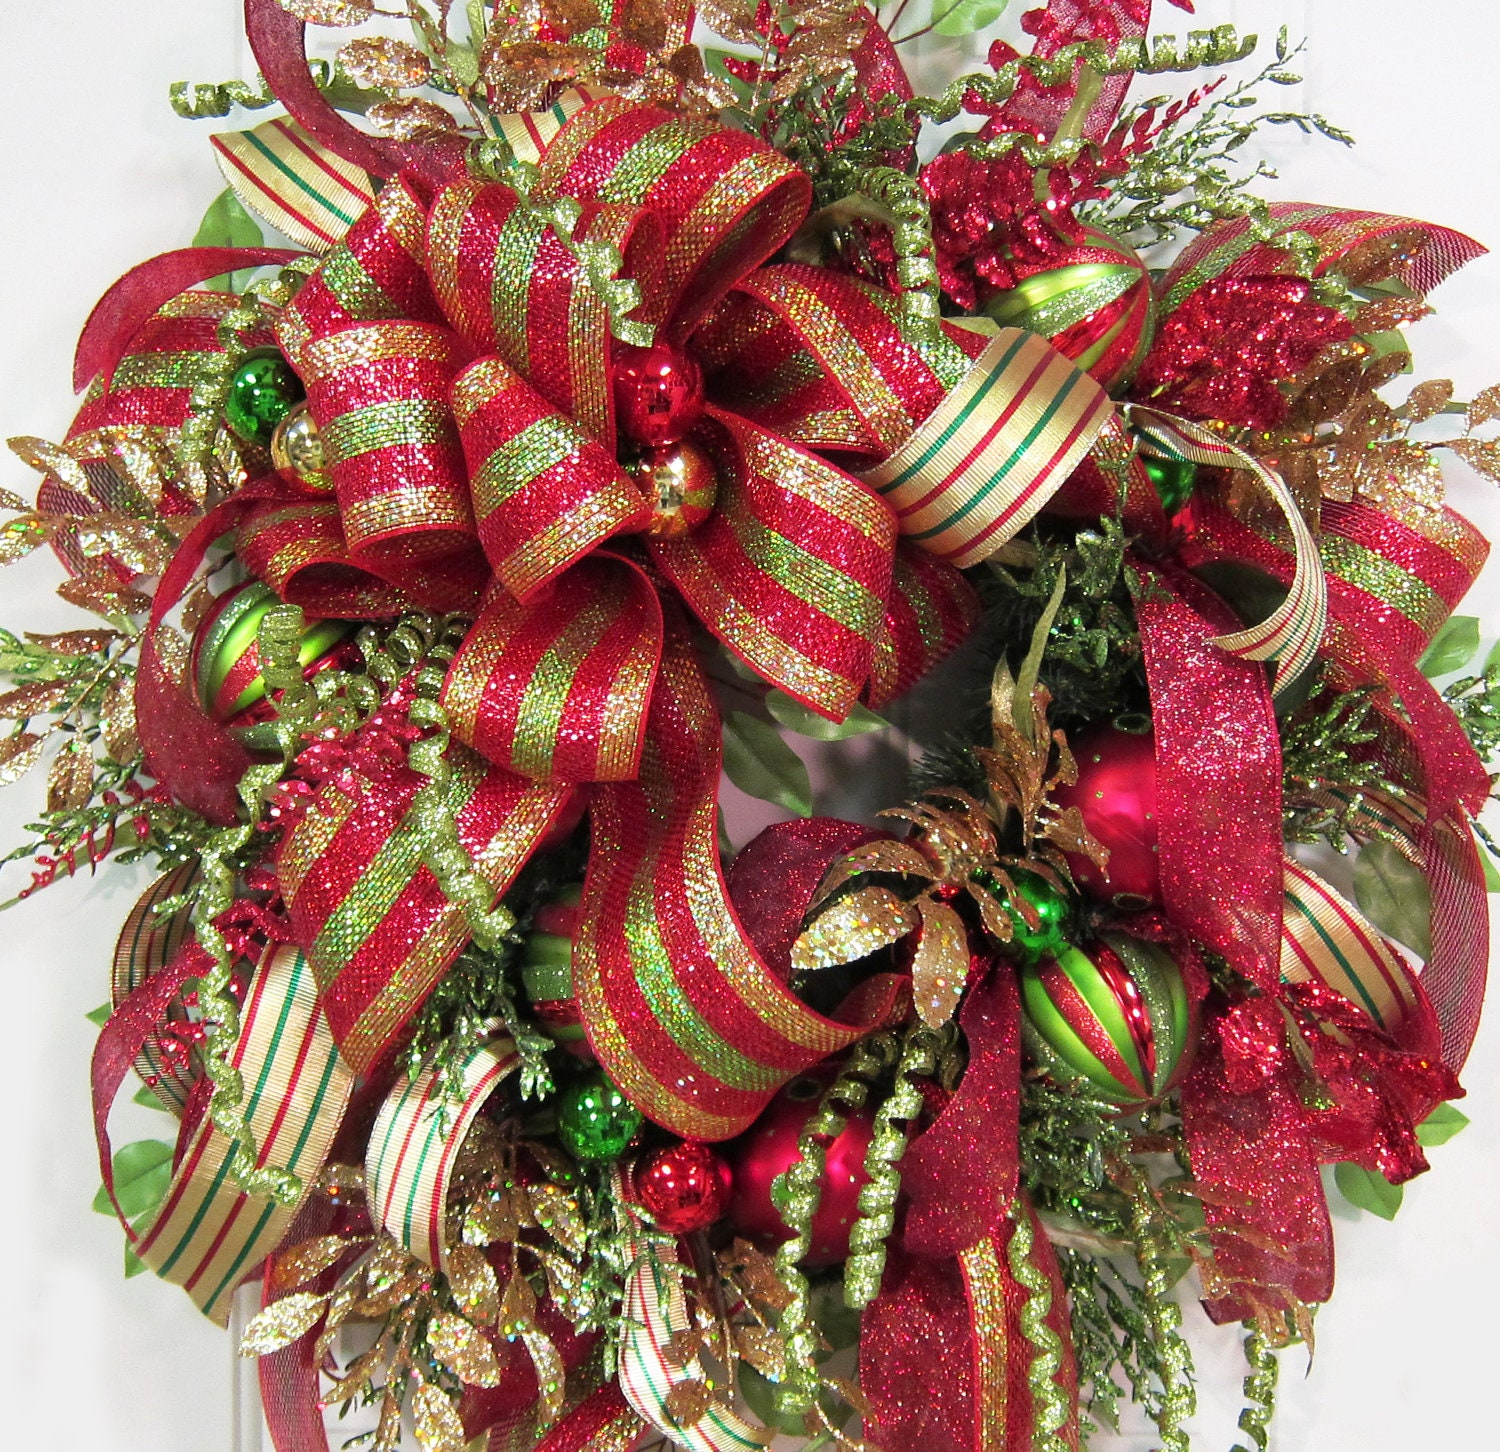 XXL Christmas Wreath With Deco Mesh And Gold Stripped Ribbon